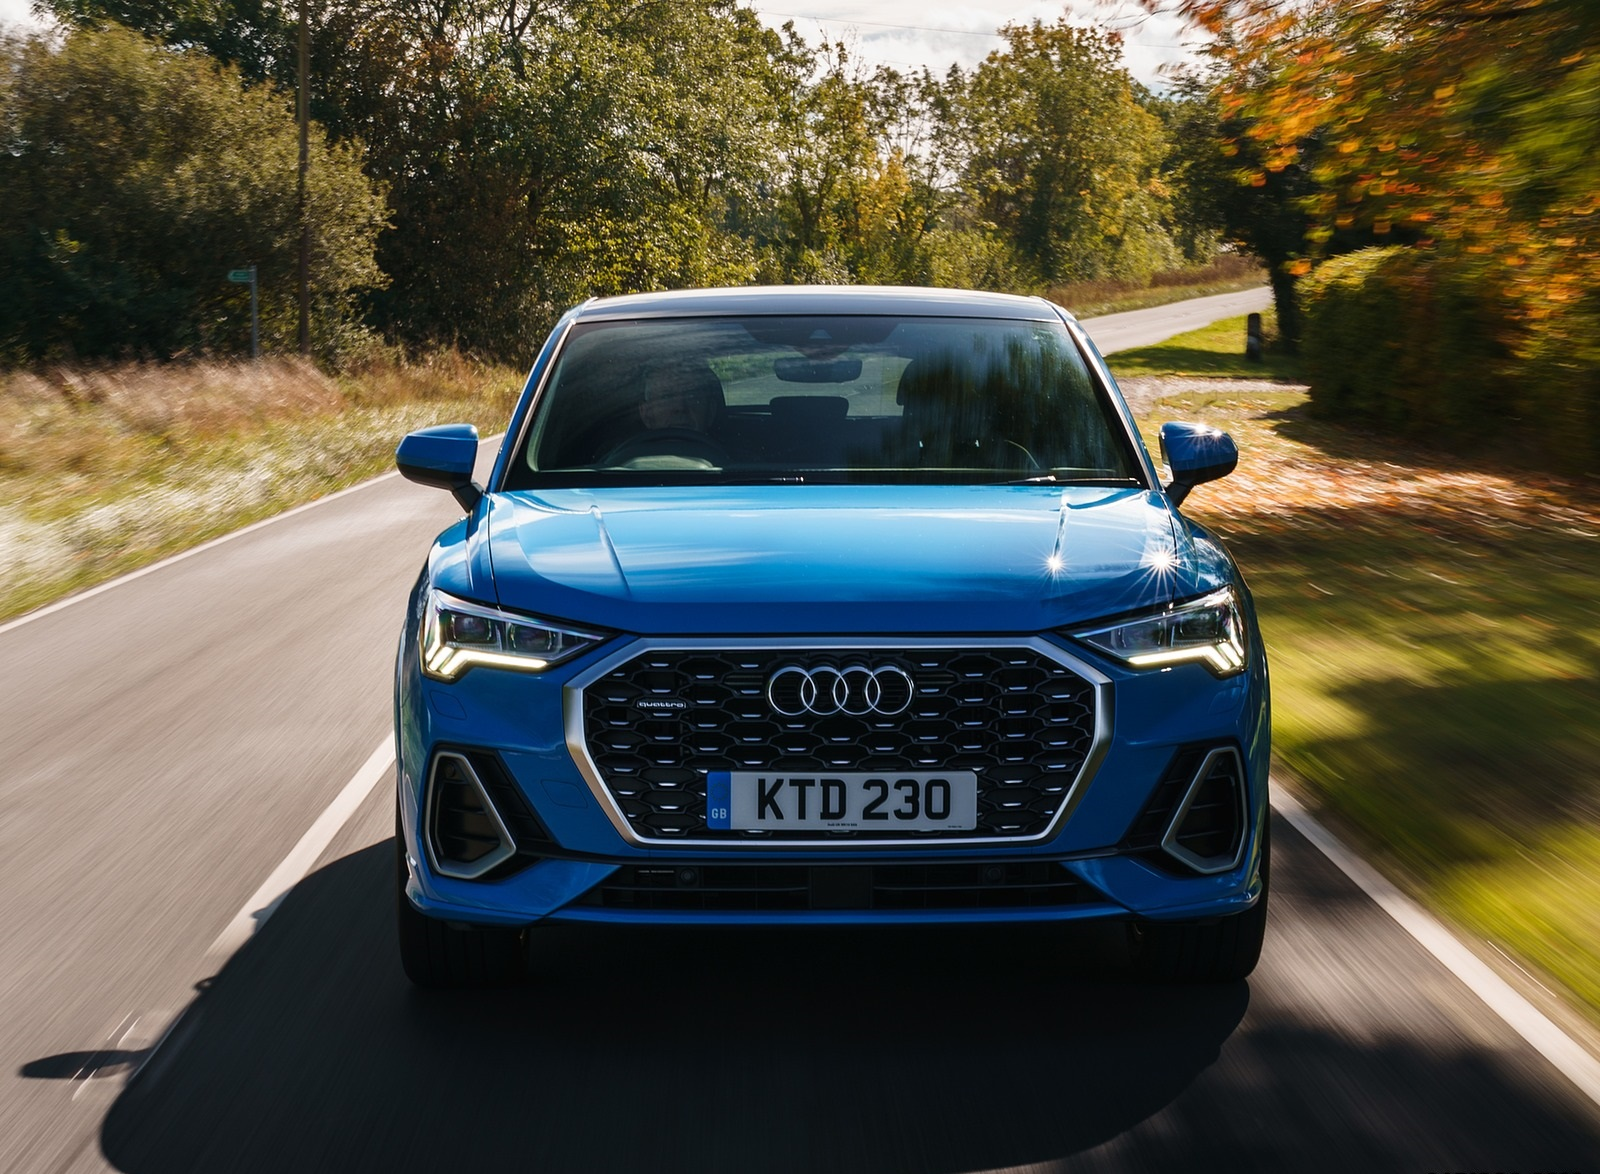 2020 Audi Q3 Sportback 45 TFSI quattro (UK-Spec) Front Wallpapers (7)